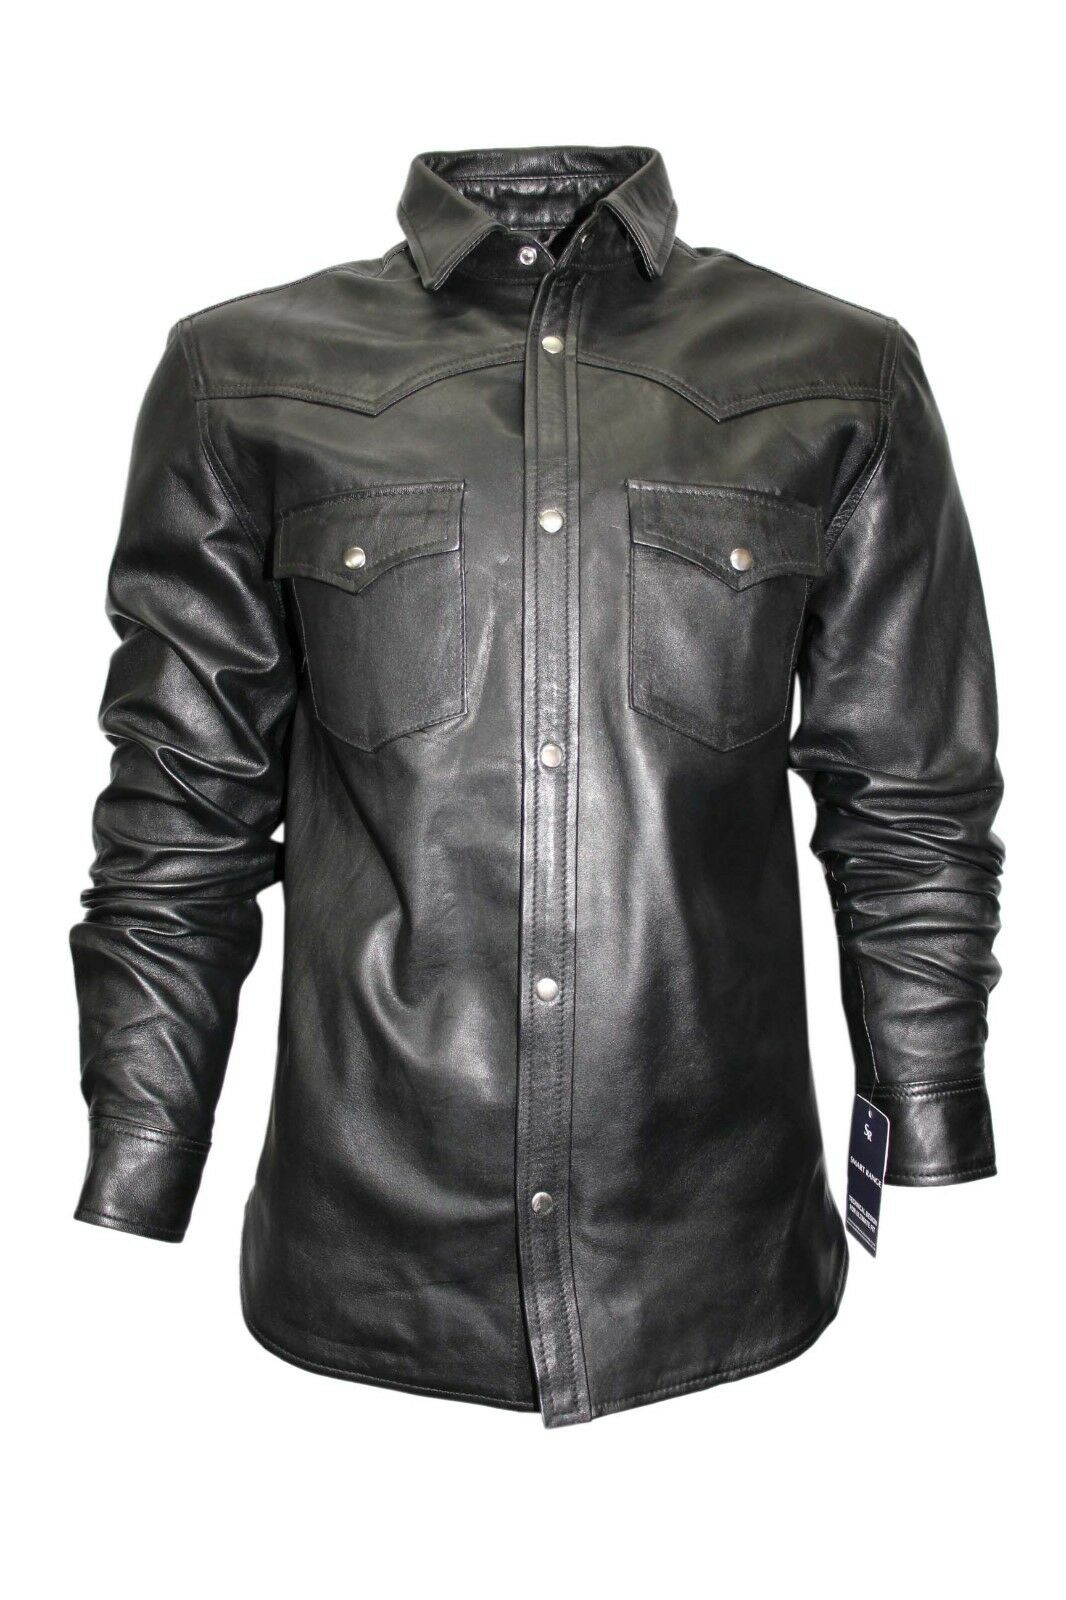 New Fashion Casual Men/'s Tan Deluxe Biker Style Real Soft Nappa Leather Jacket